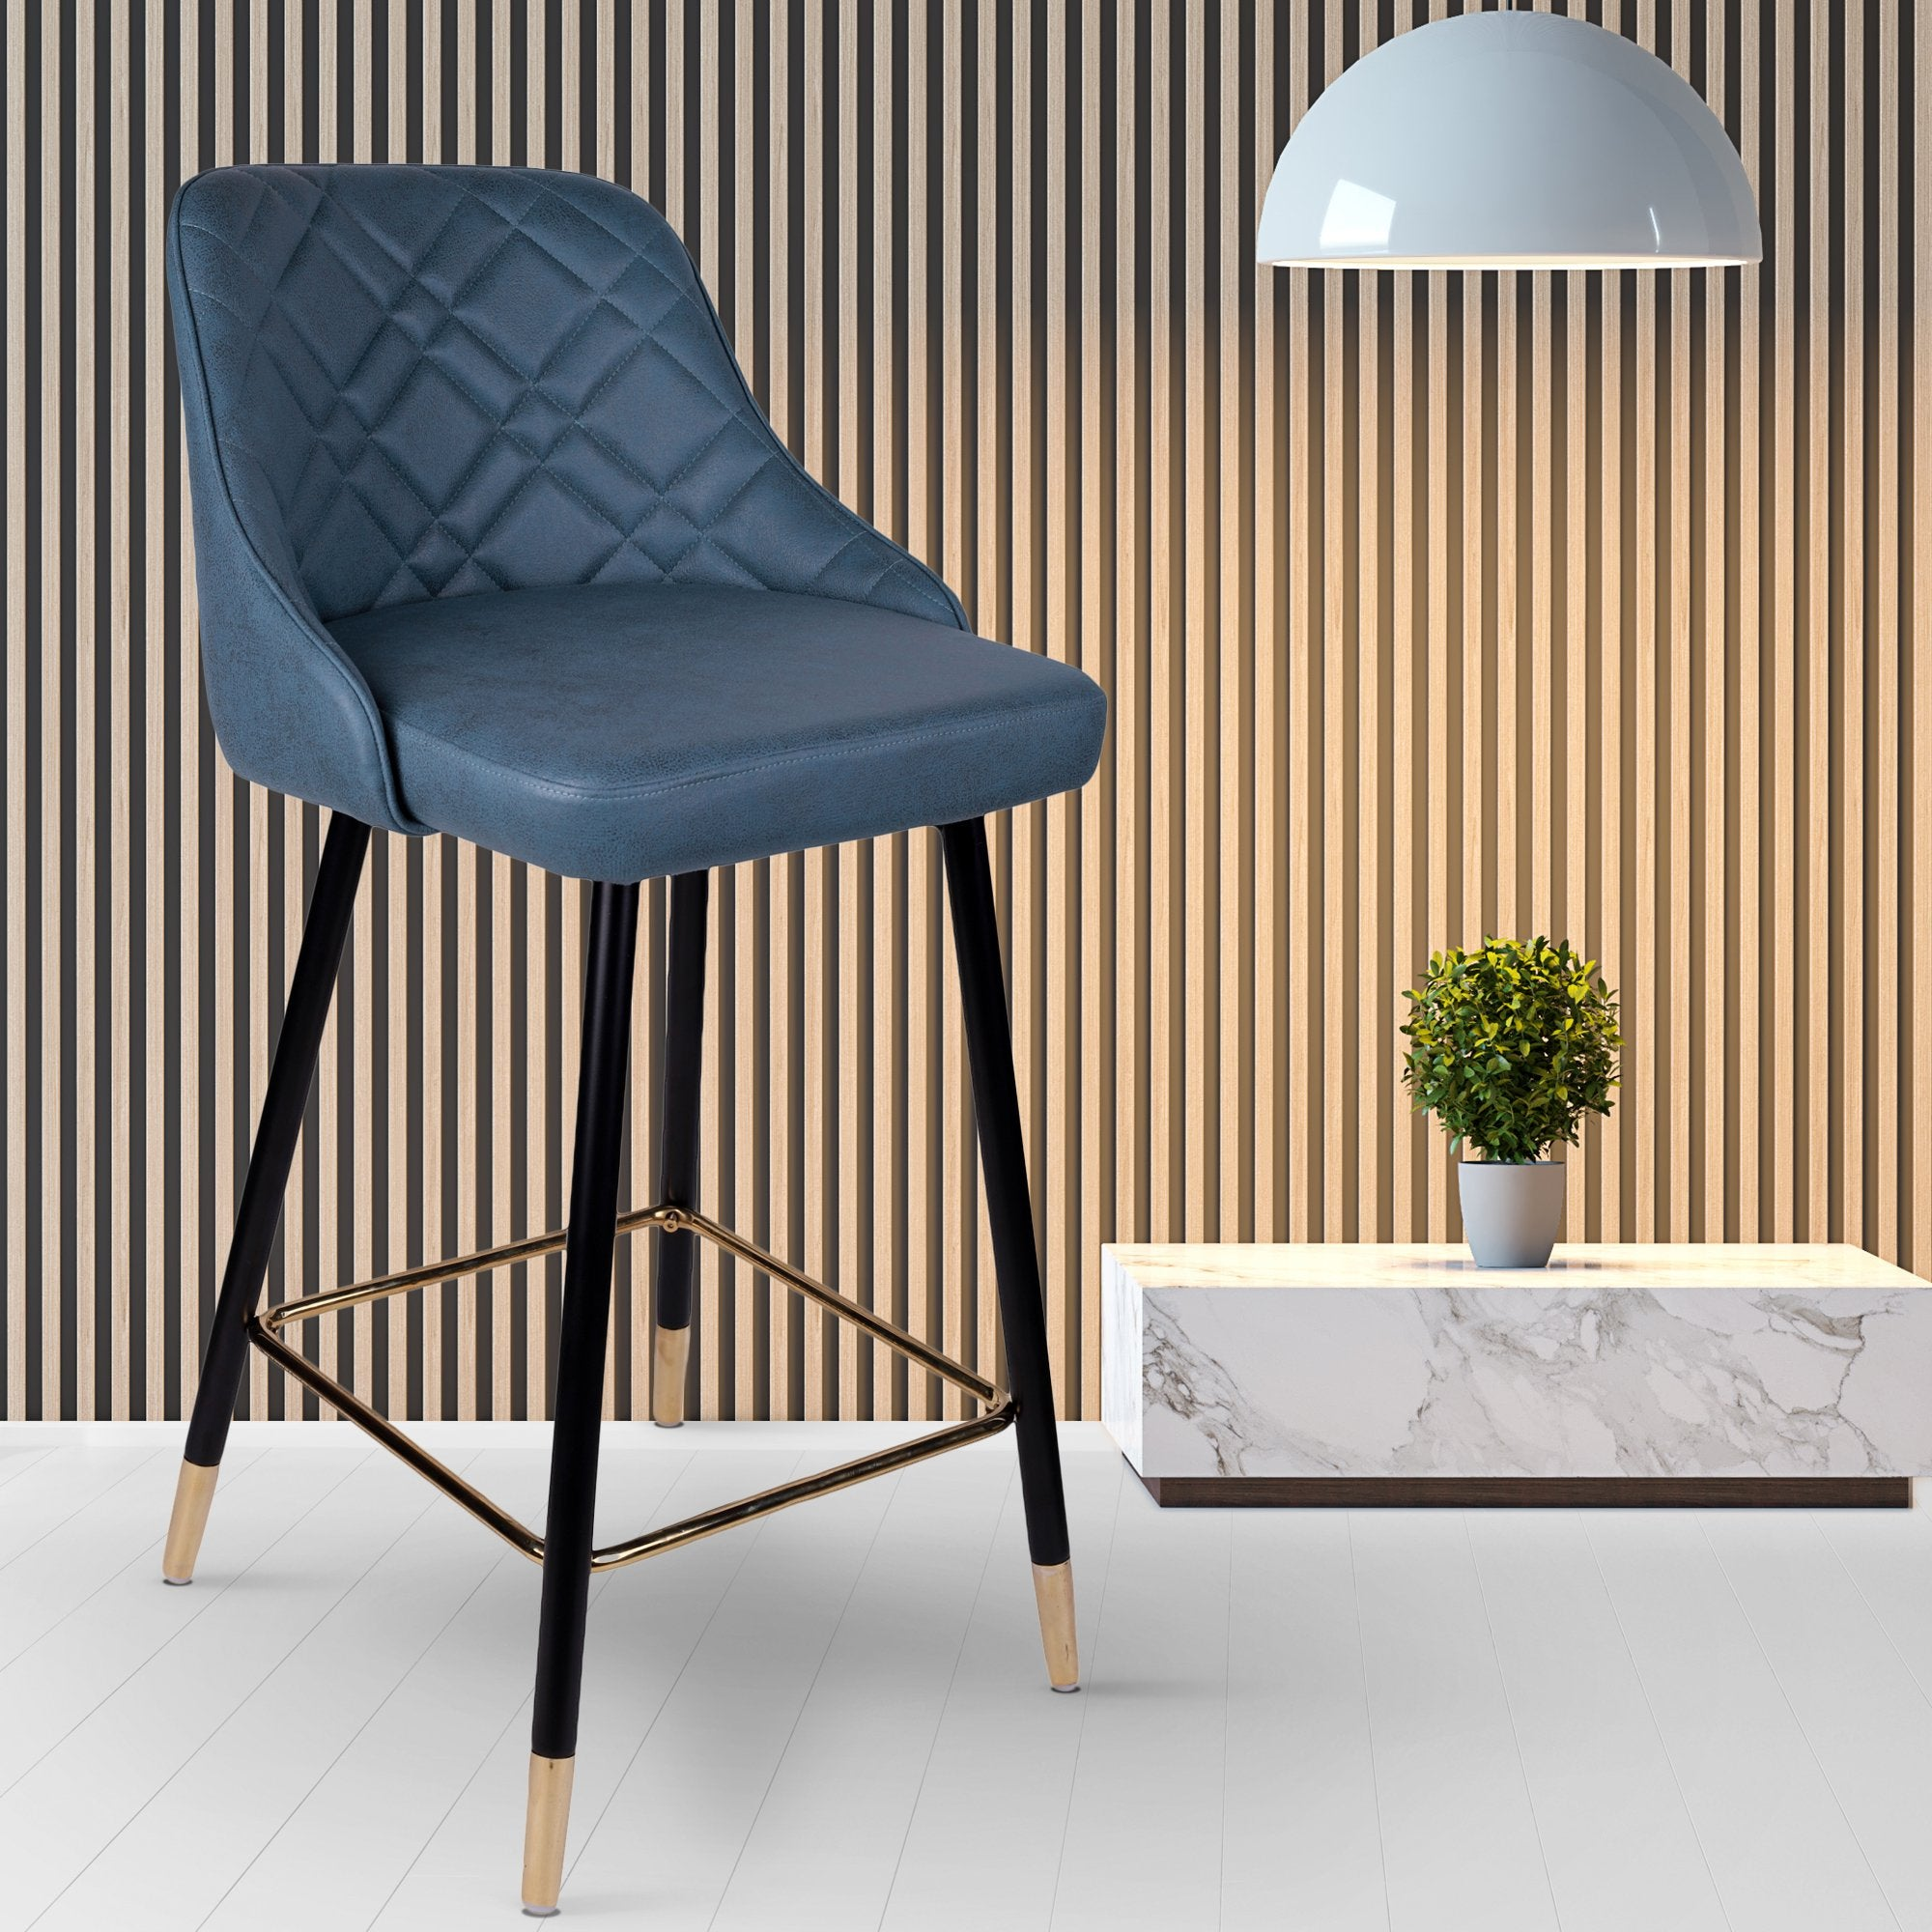 Bar Chair in Grey Color - Teak Tale